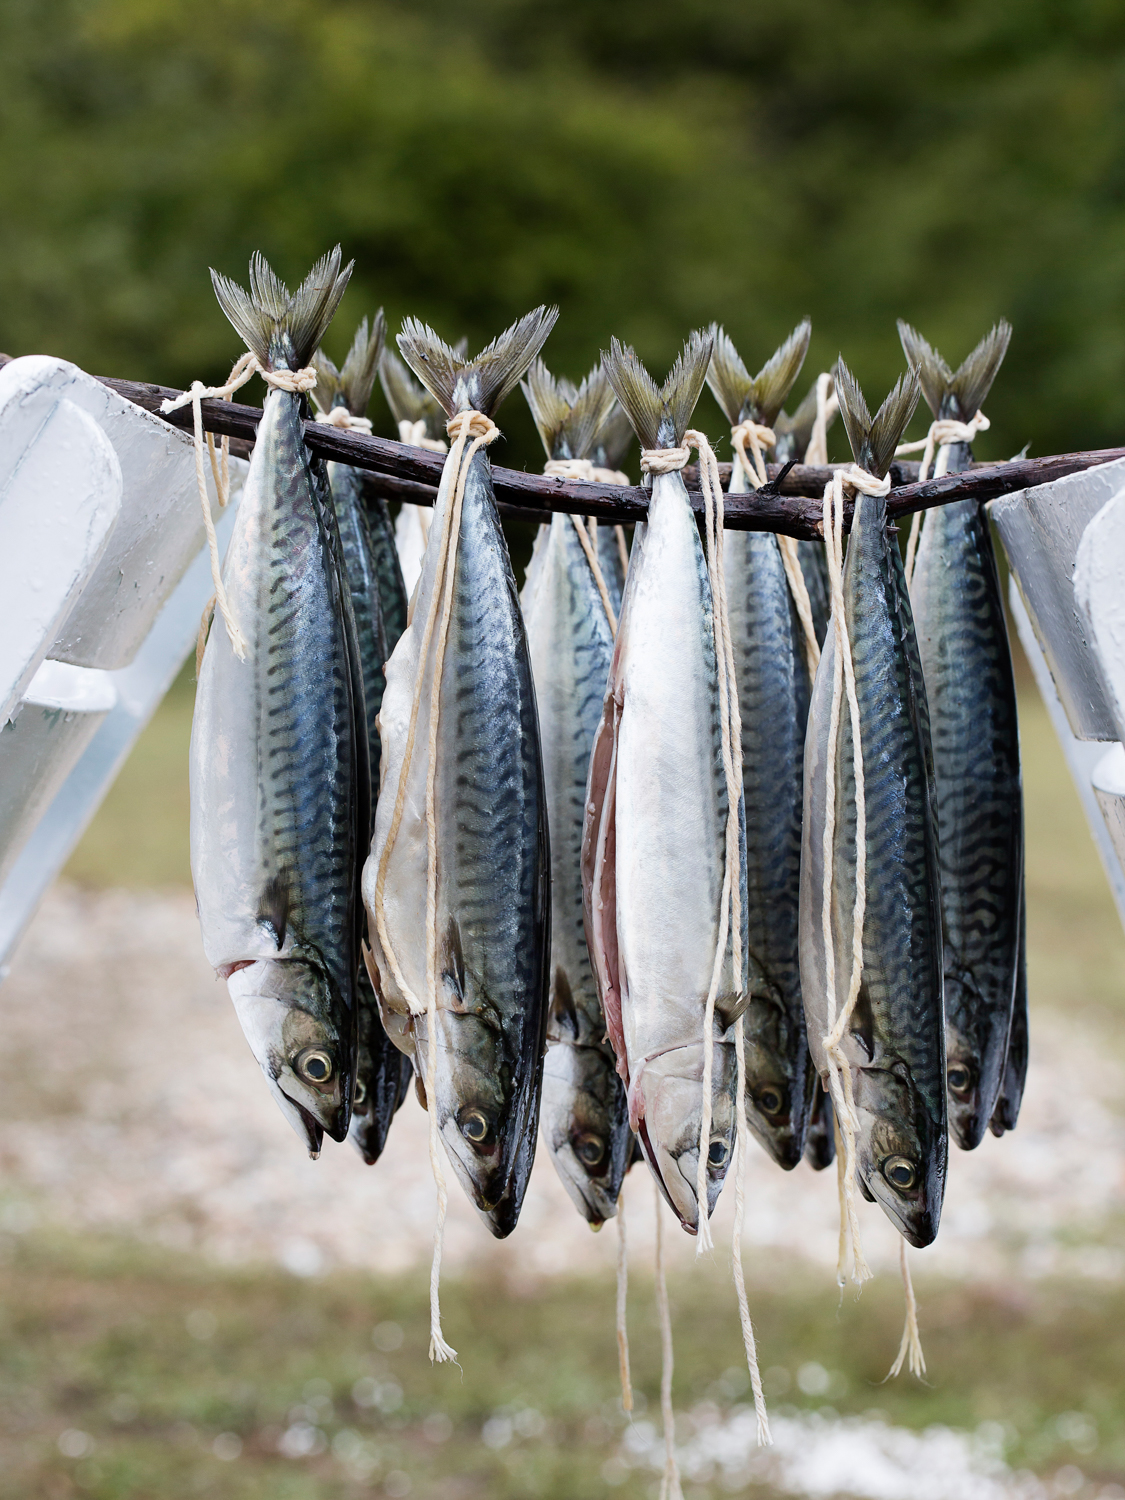 Smoking Mackerel - Ruhun Doysun I GRUNDIG